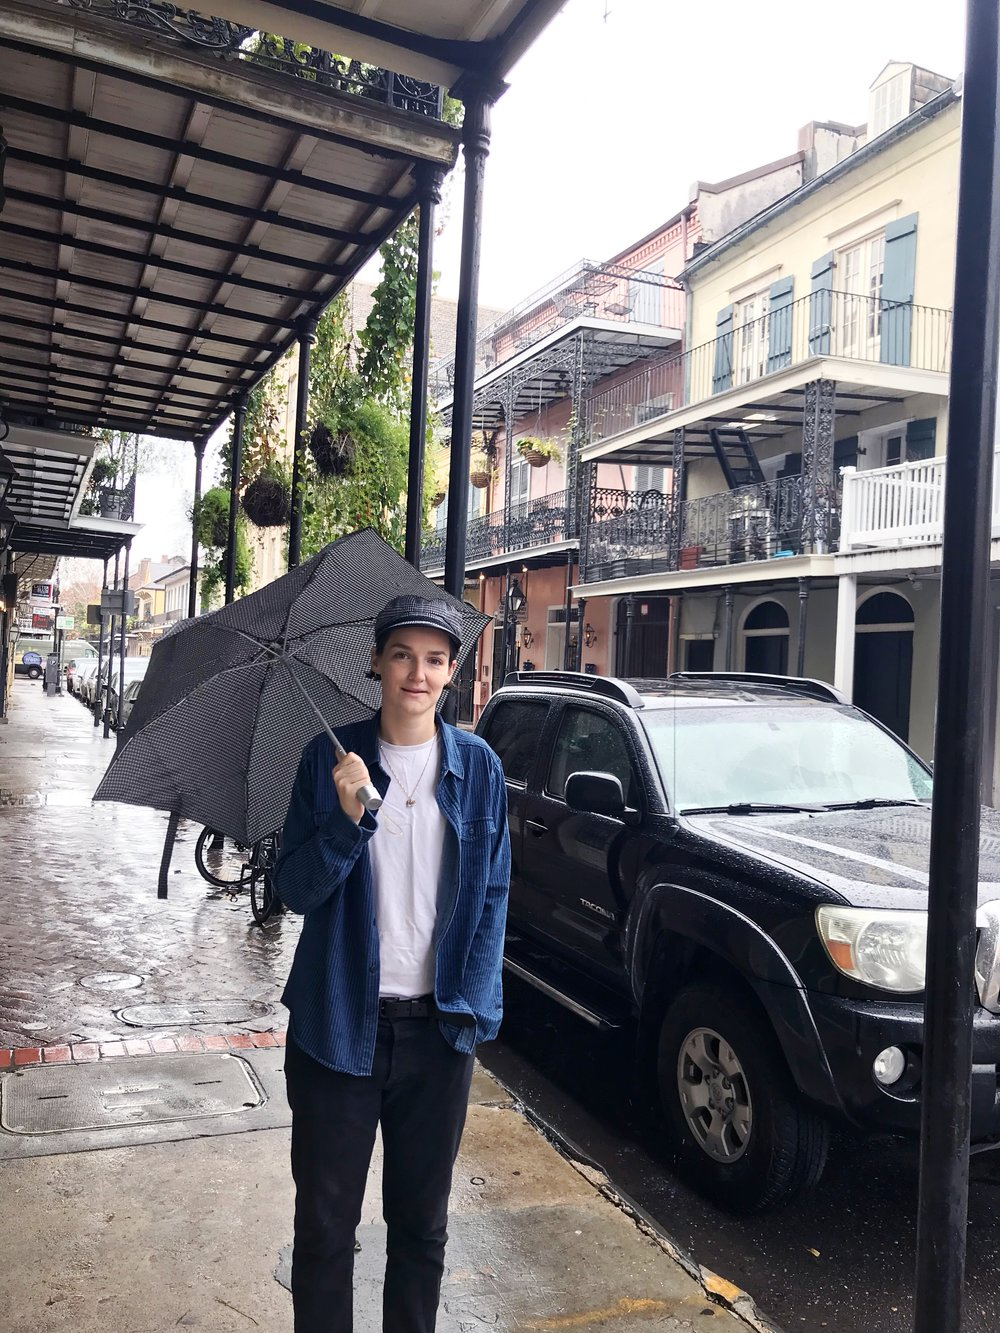 Rainy_Day_NOLA.JPG